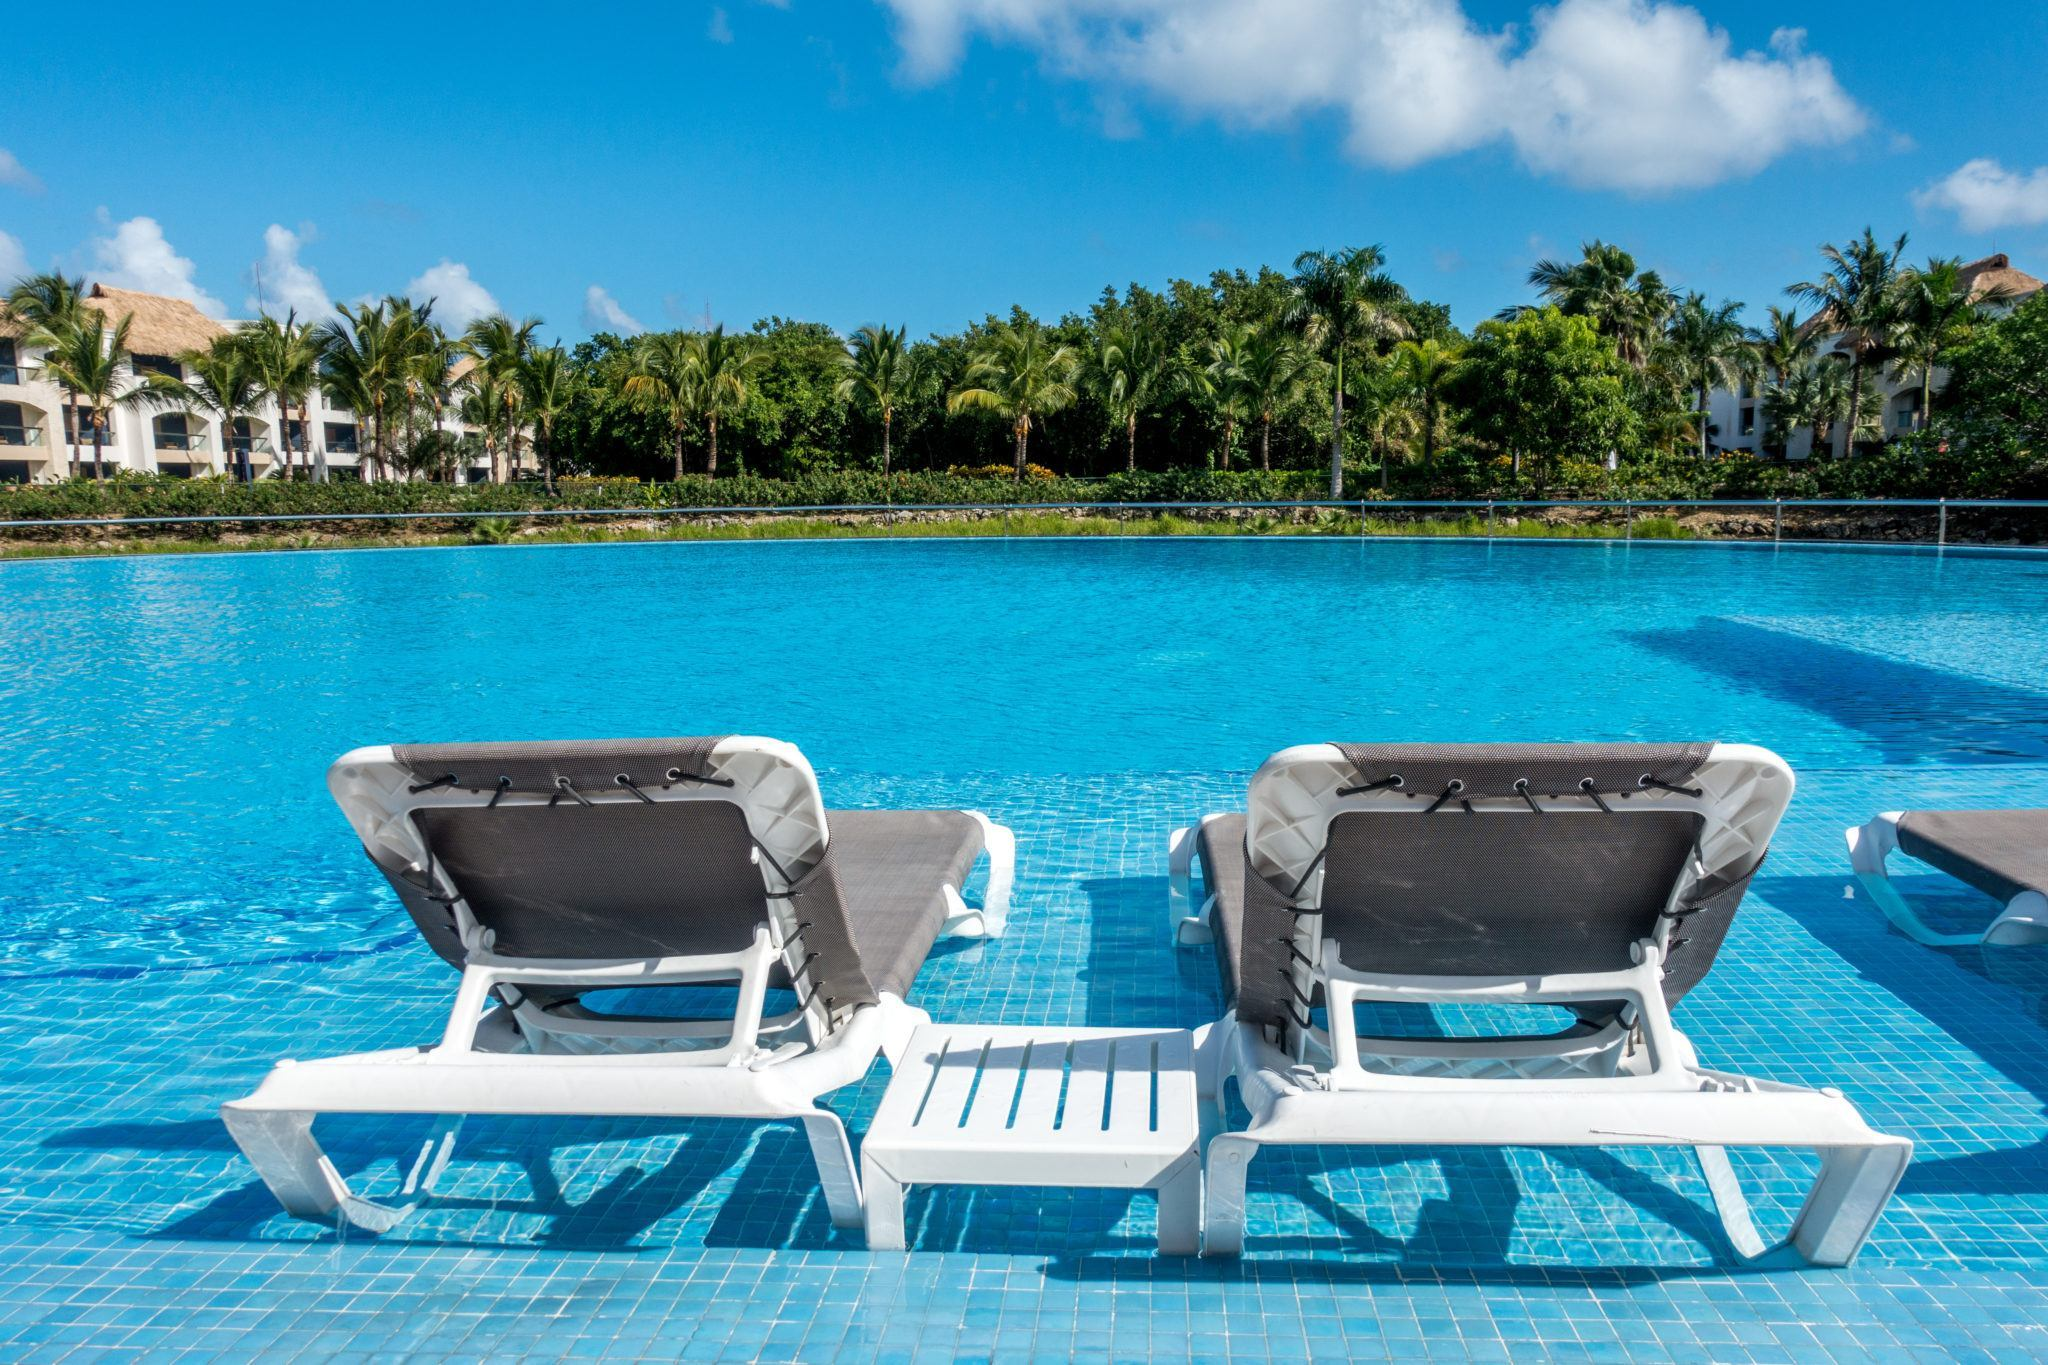 Relax in one of the many pools at Hard Rock Punta Cana in the Dominican Republic